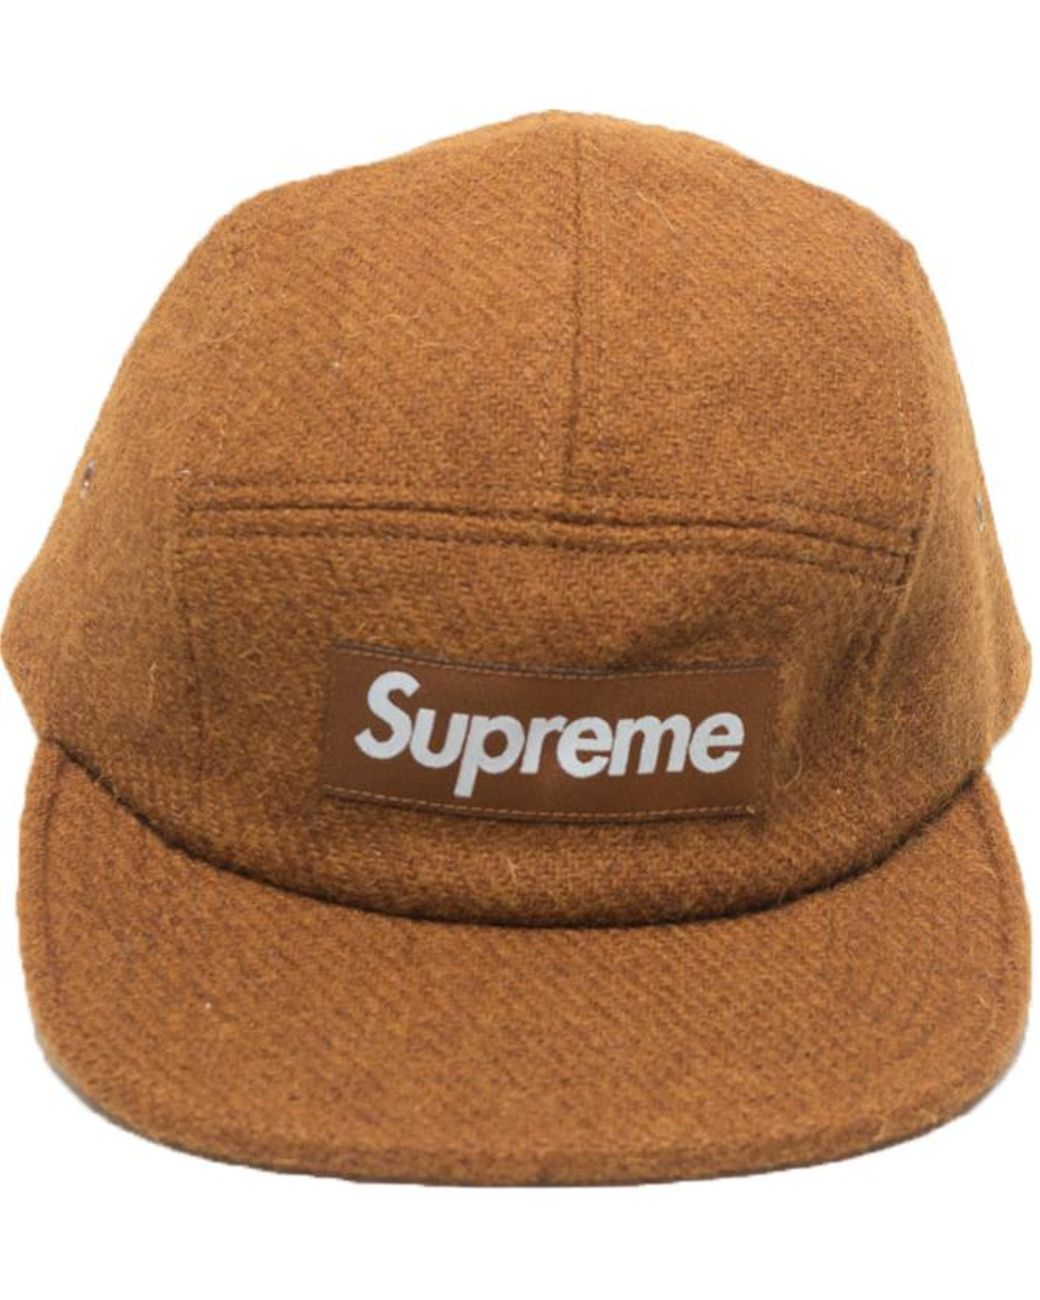 release date 85918 3c4b0 Supreme Featherweight Wool Camp Cap Brown in Brown for Men - Lyst